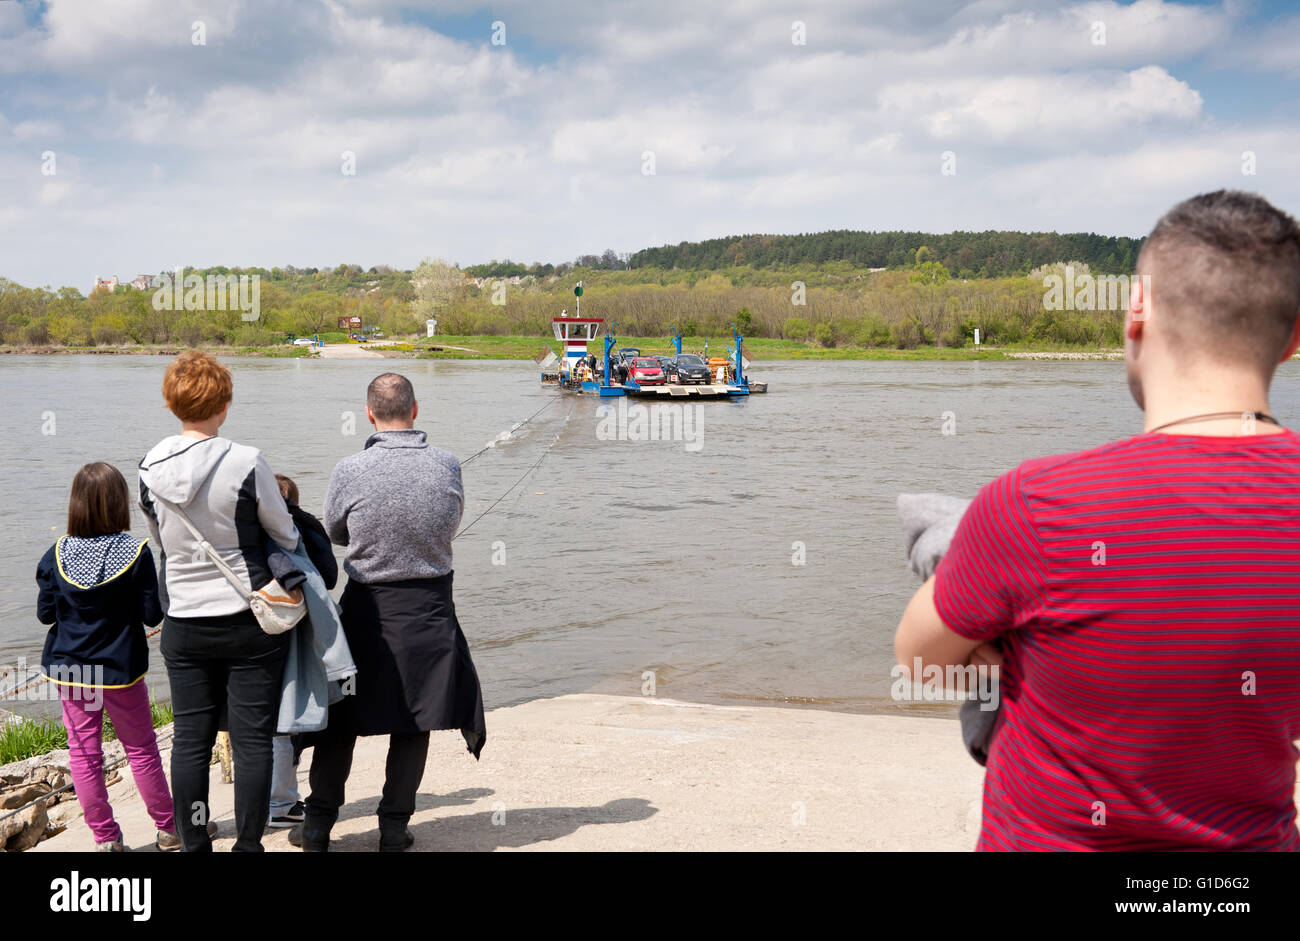 Cable ferry ship to Kazimierz Dolny from Janowiec in Poland, Europe, passenger local floating bridge is small ship - Stock Image